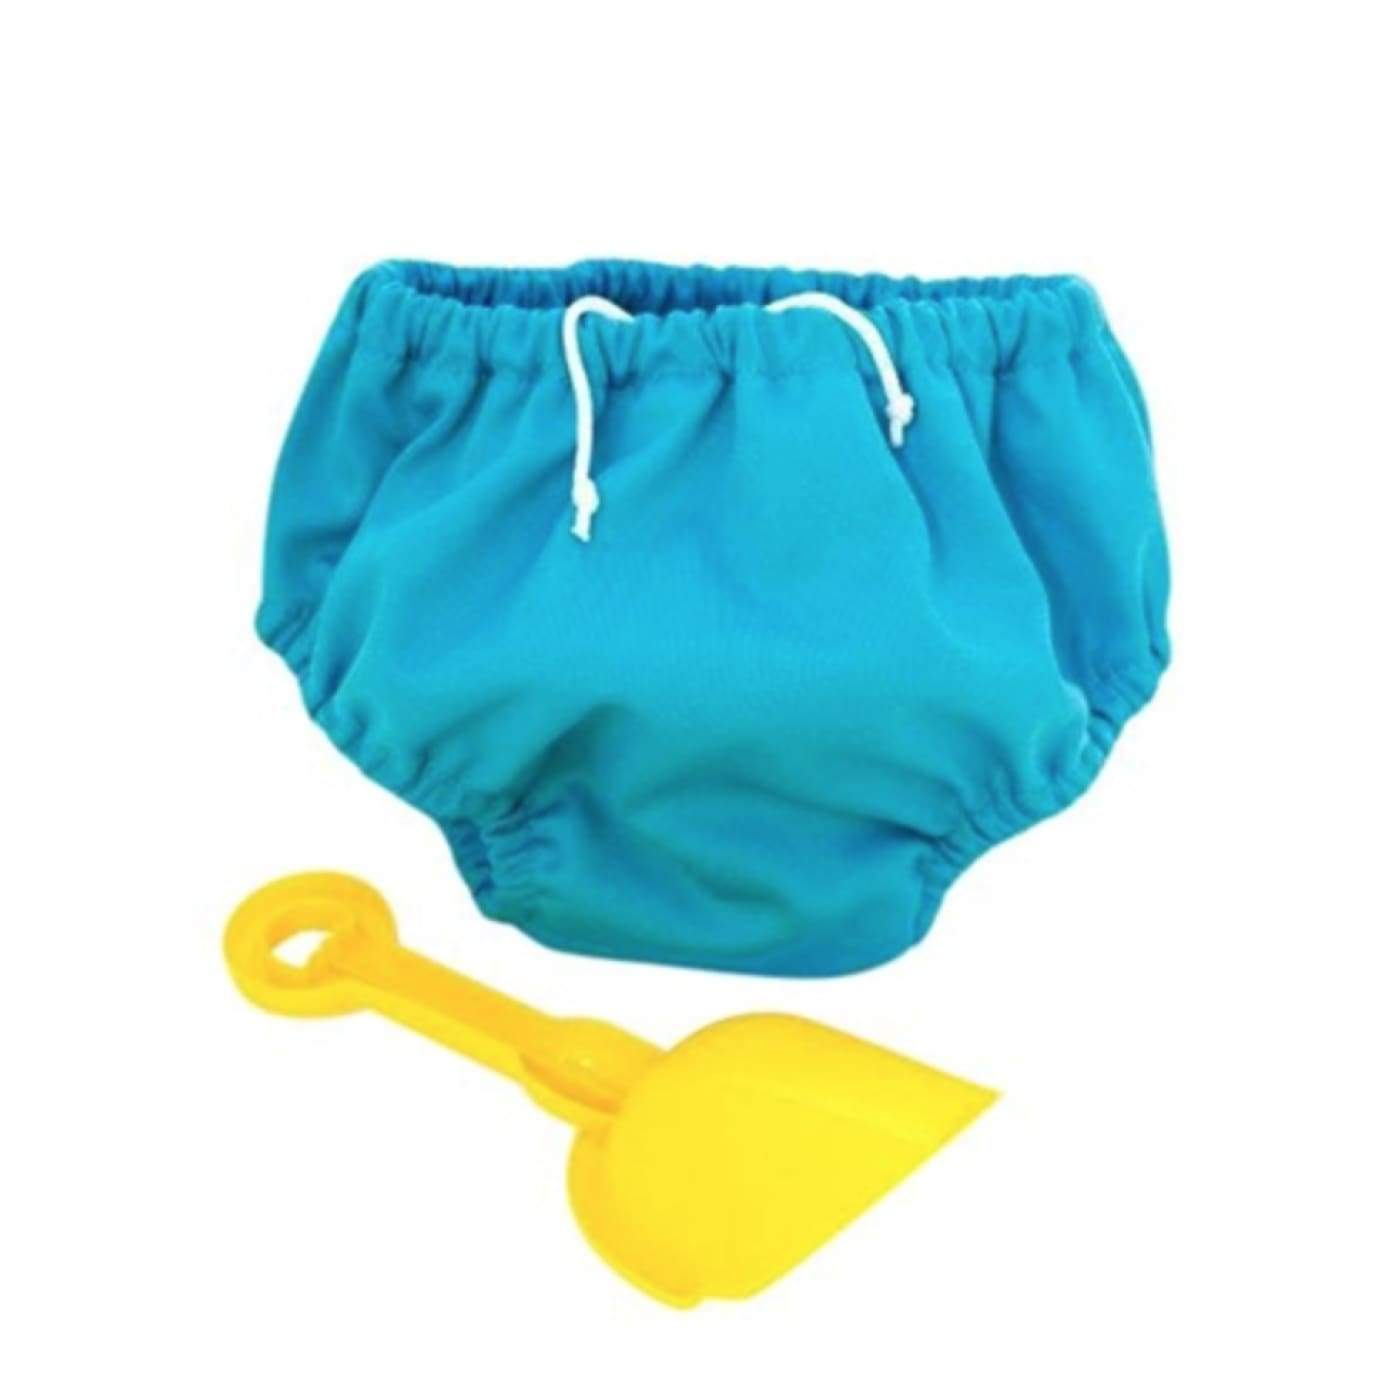 Pea Pods Swimmers Medium - Aqua Blue - BABY & TODDLER CLOTHING - SWIMMERS/ACCESSORIES